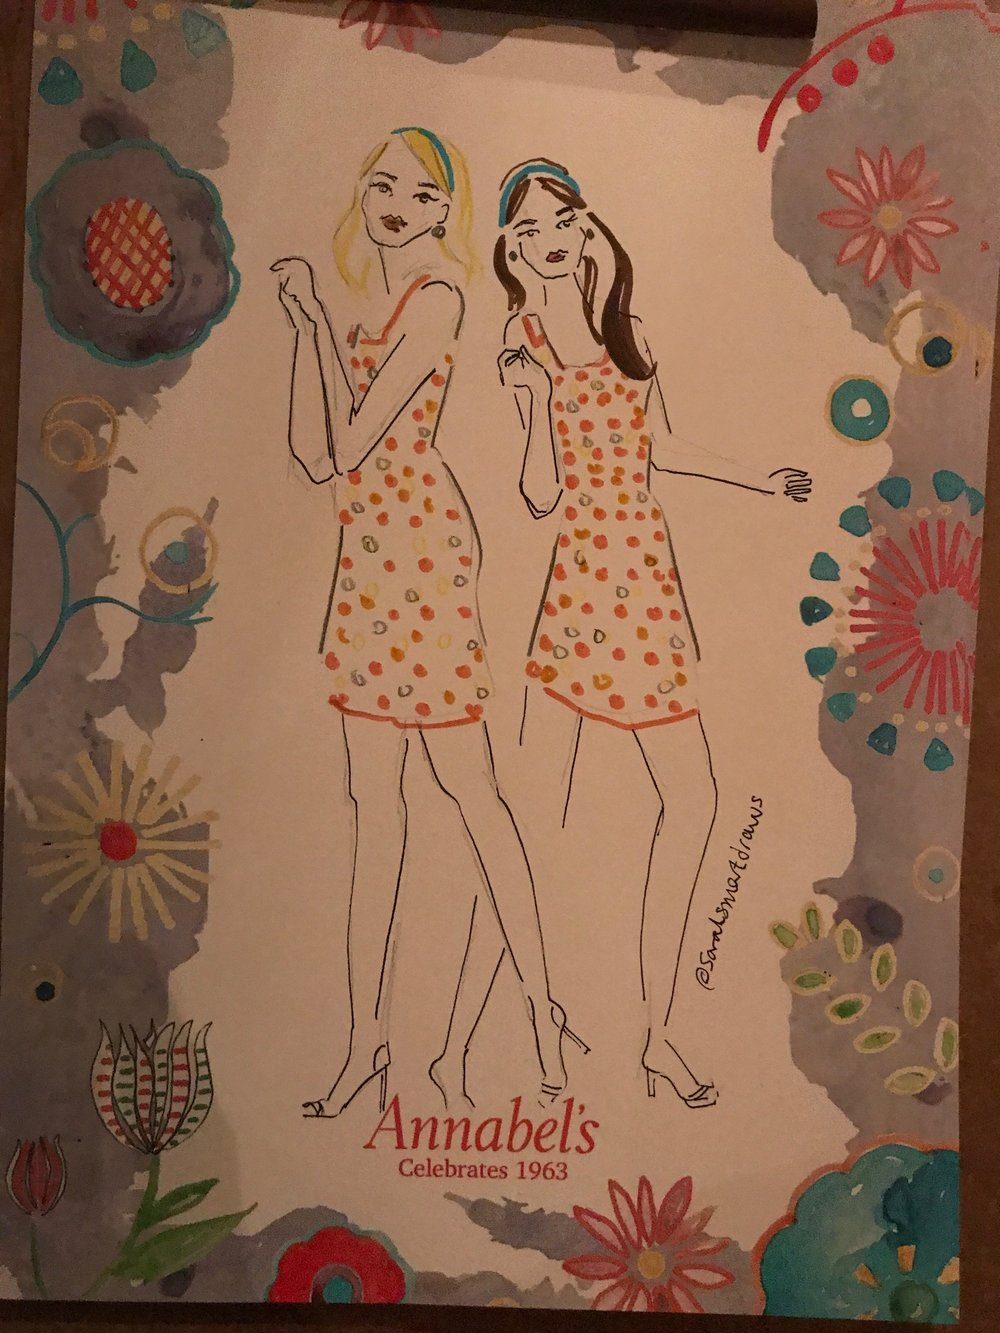 Live Illustration Event at Annabel's